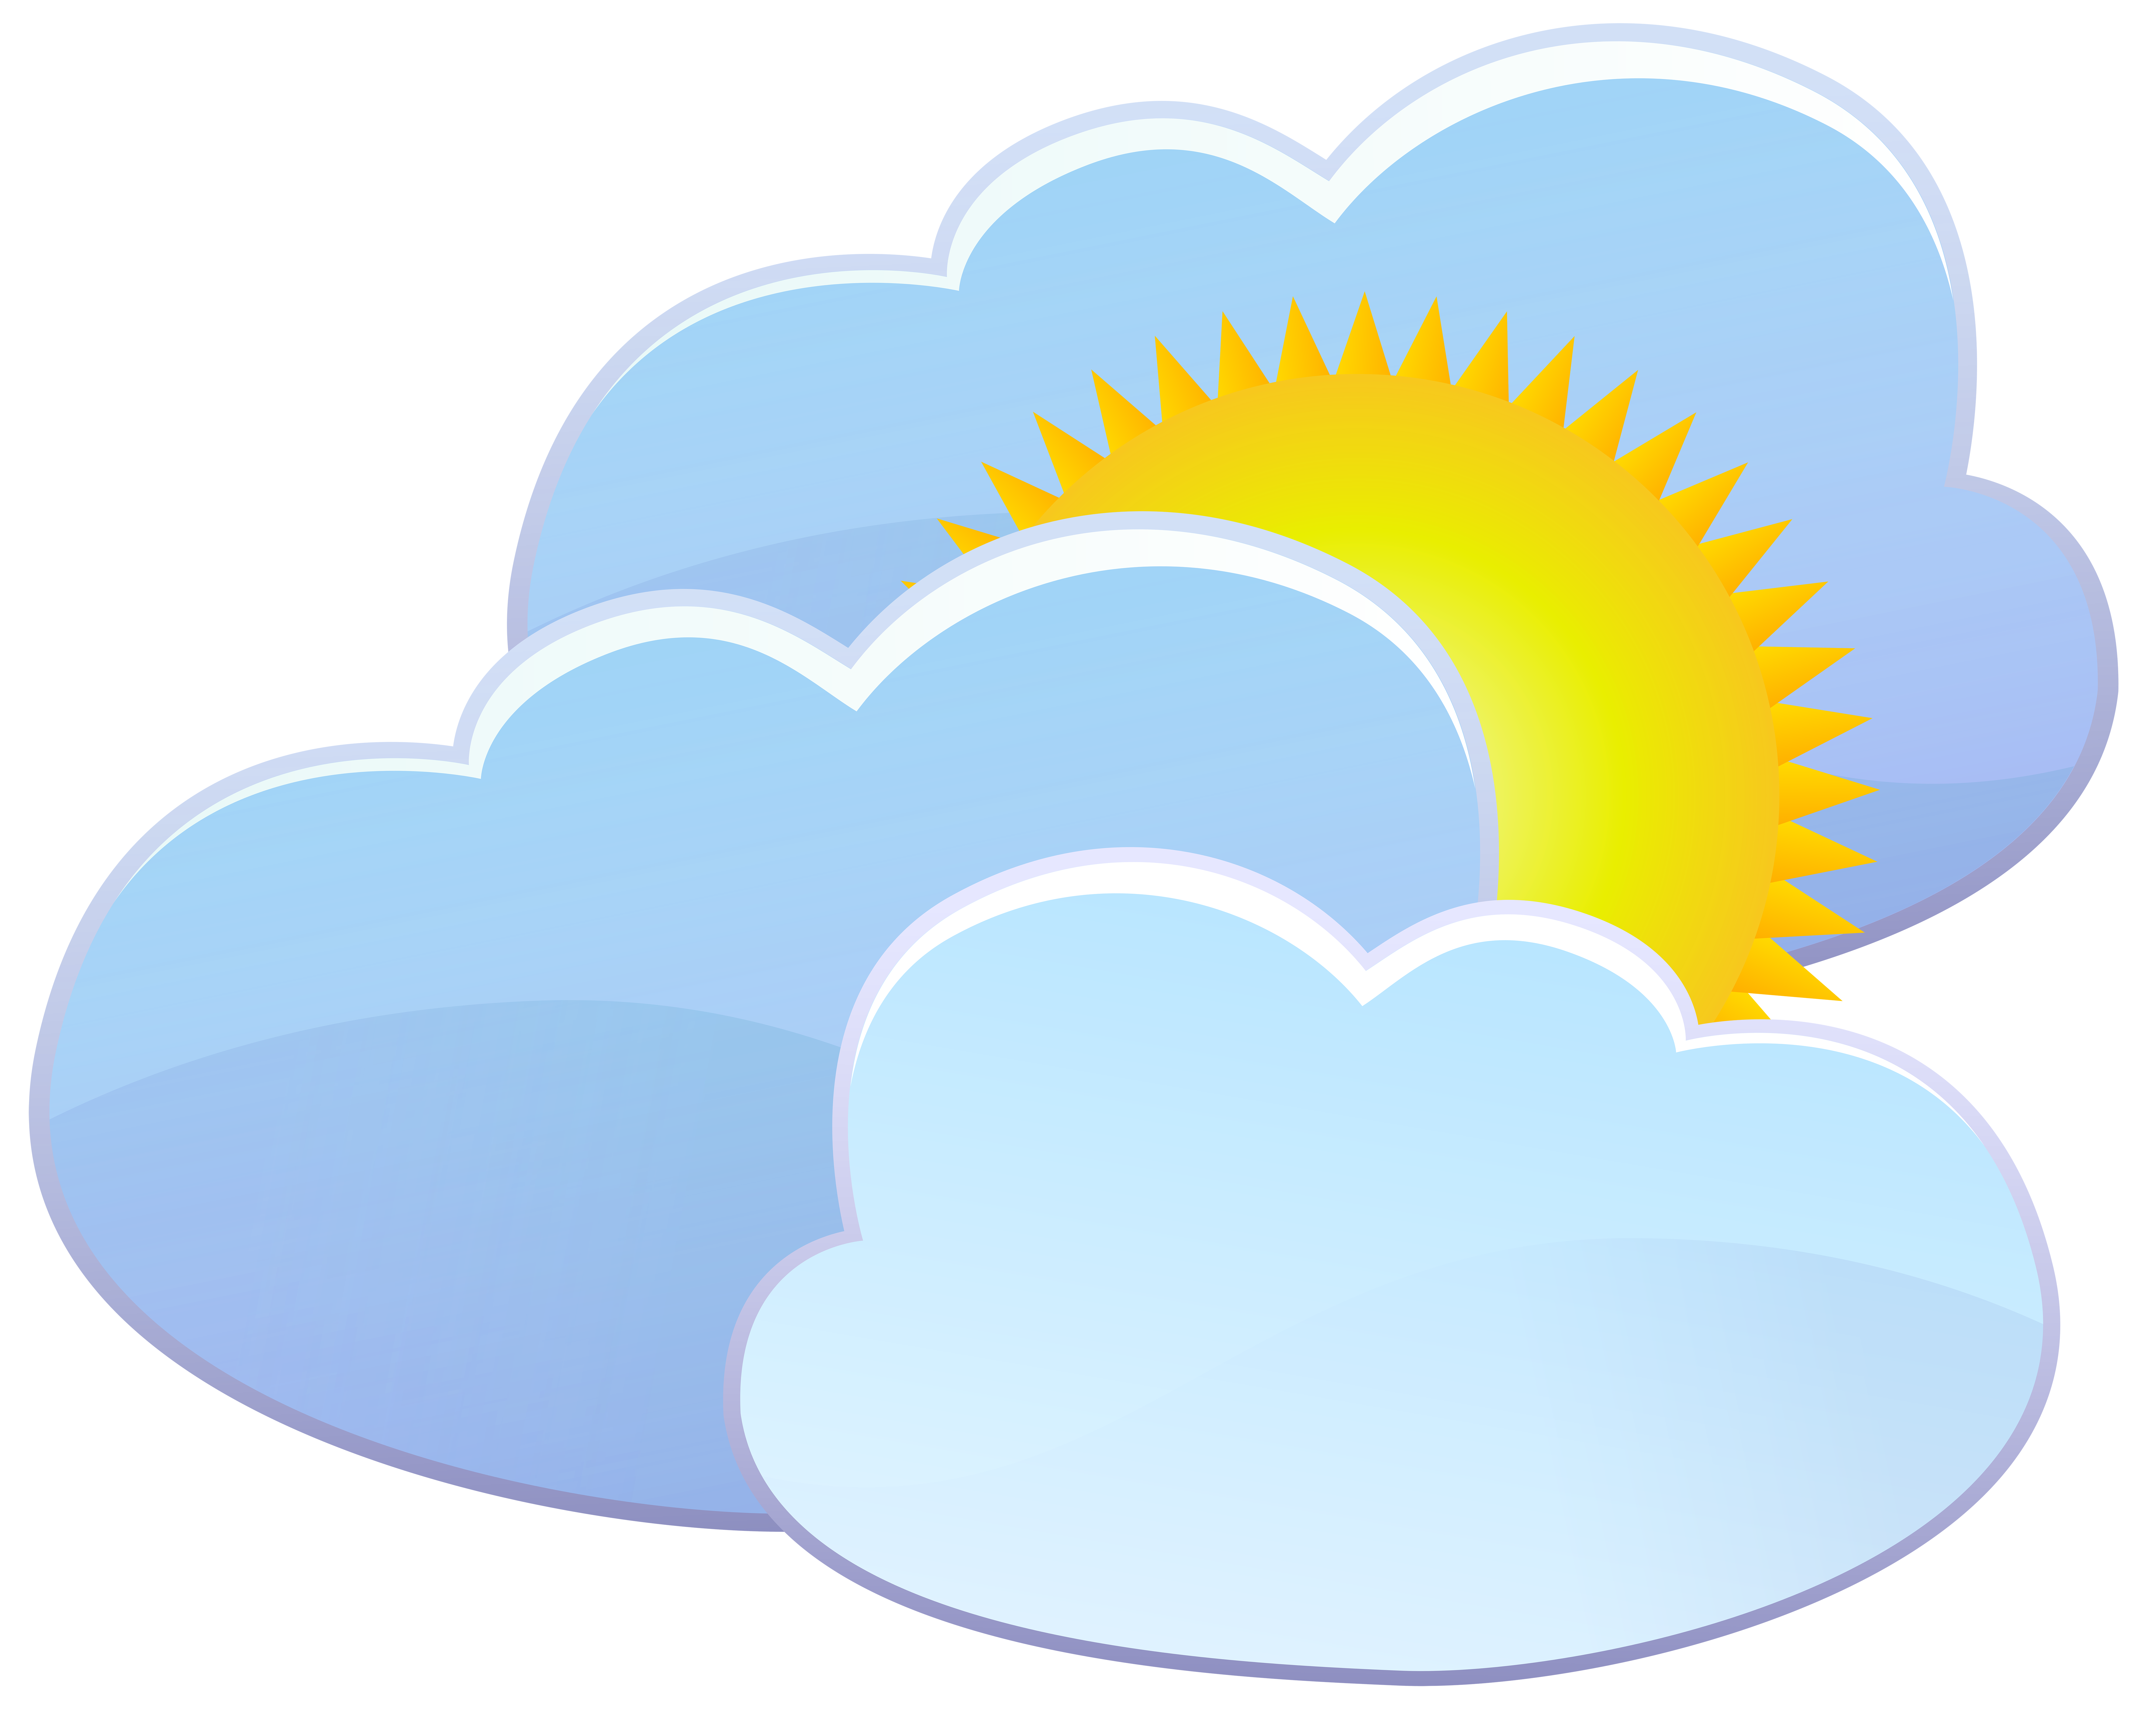 Sun and clouds png. Three weather icon clip